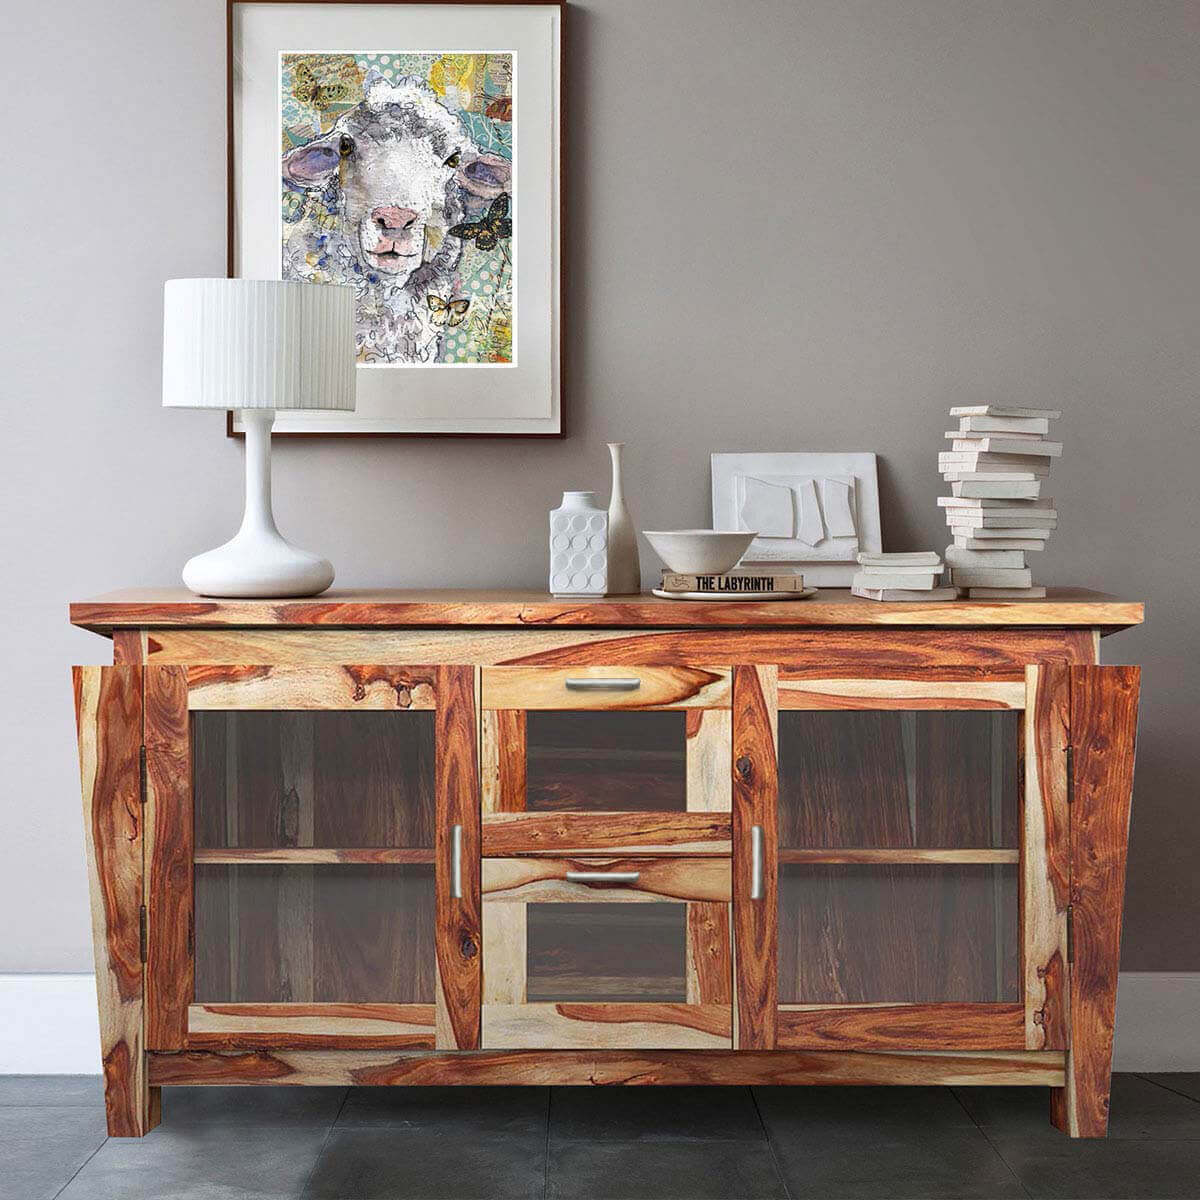 Dallas Ranch Solid Wood Rustic Dining Table Chairs Hutch Set: Large Solid Wood Dallas Square Dining Table & Chair Set